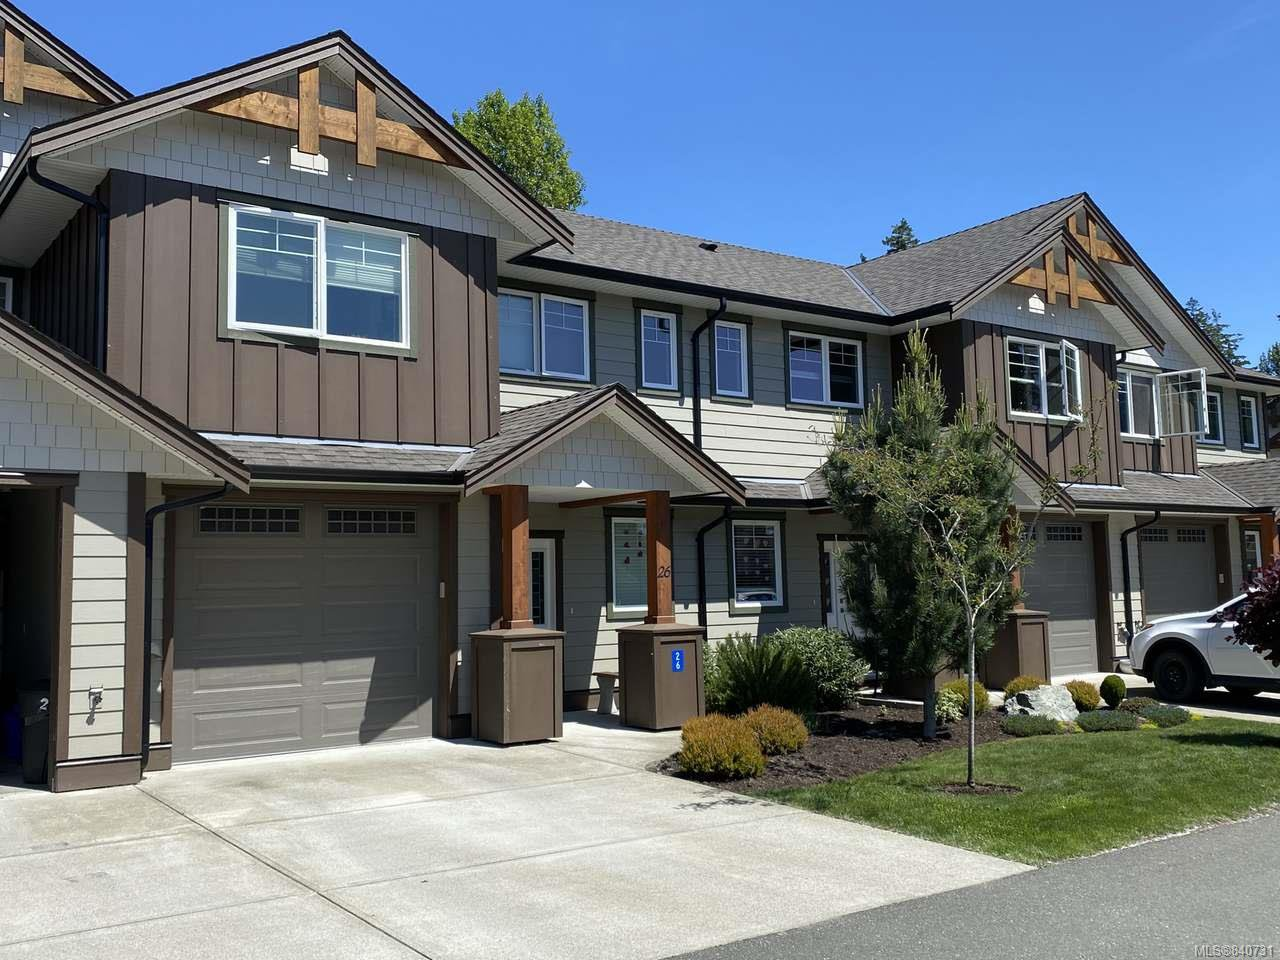 Main Photo: 26 2030 Wallace Ave in COMOX: CV Comox (Town of) Row/Townhouse for sale (Comox Valley)  : MLS®# 840731